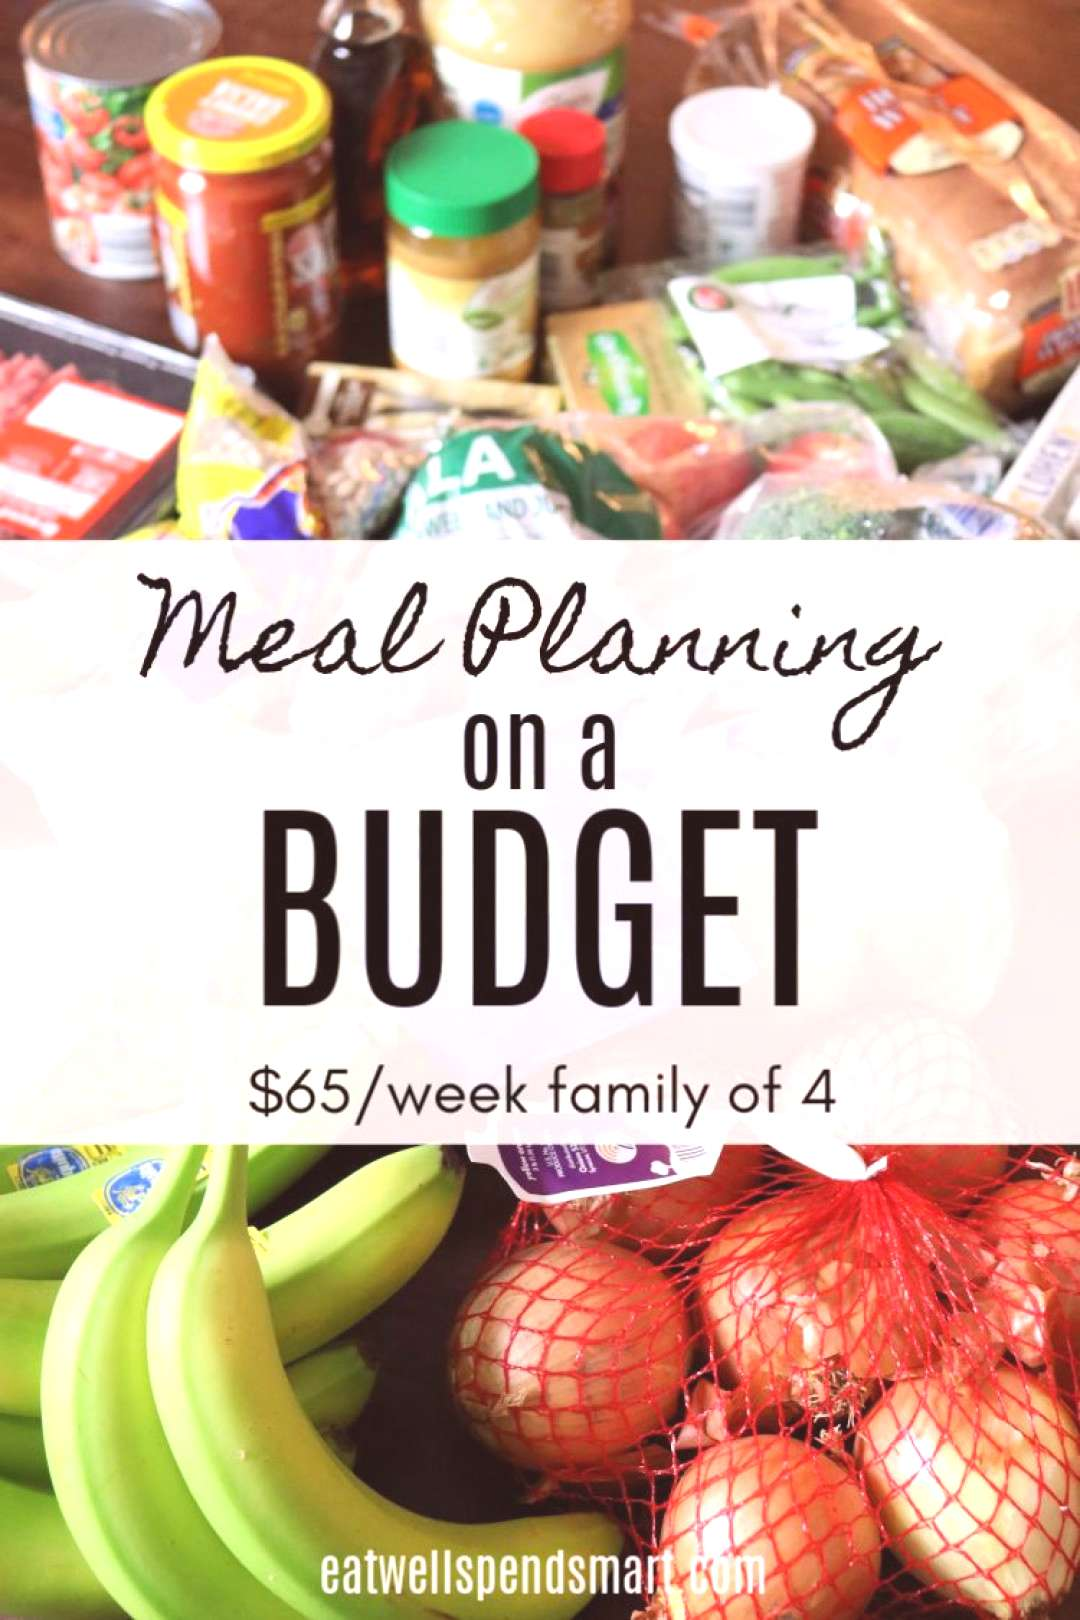 Meal planning on a budget takes some practice but is doable! Read about how we feed a family health